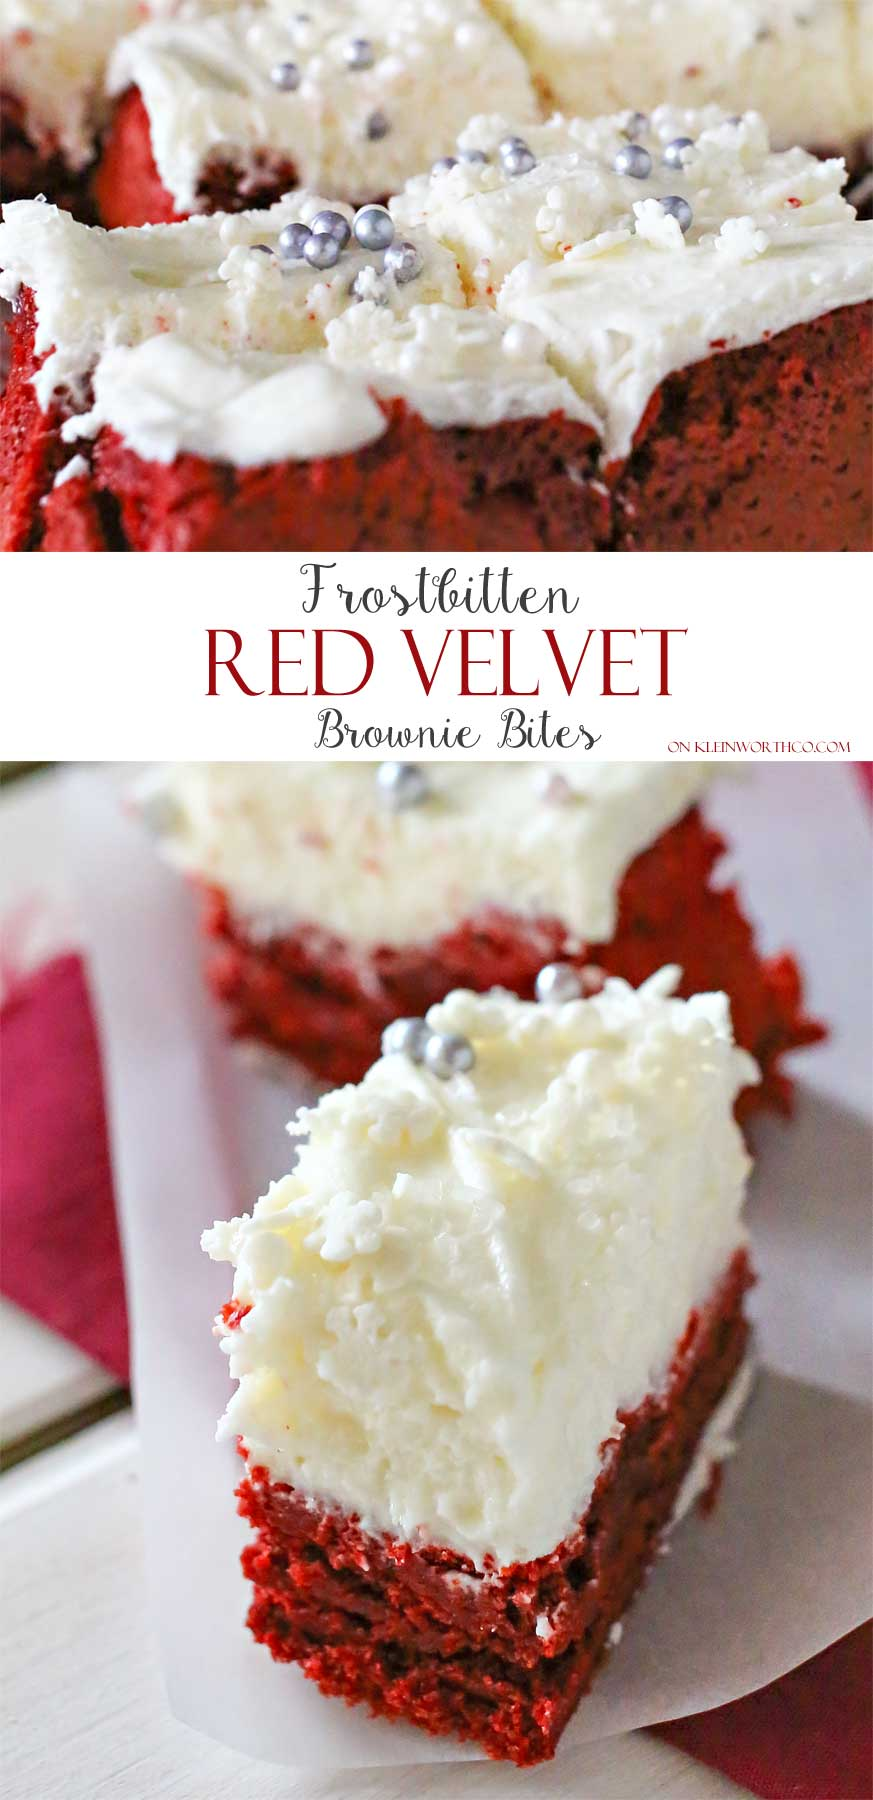 Frostbitten Red Velvet Brownie Bites